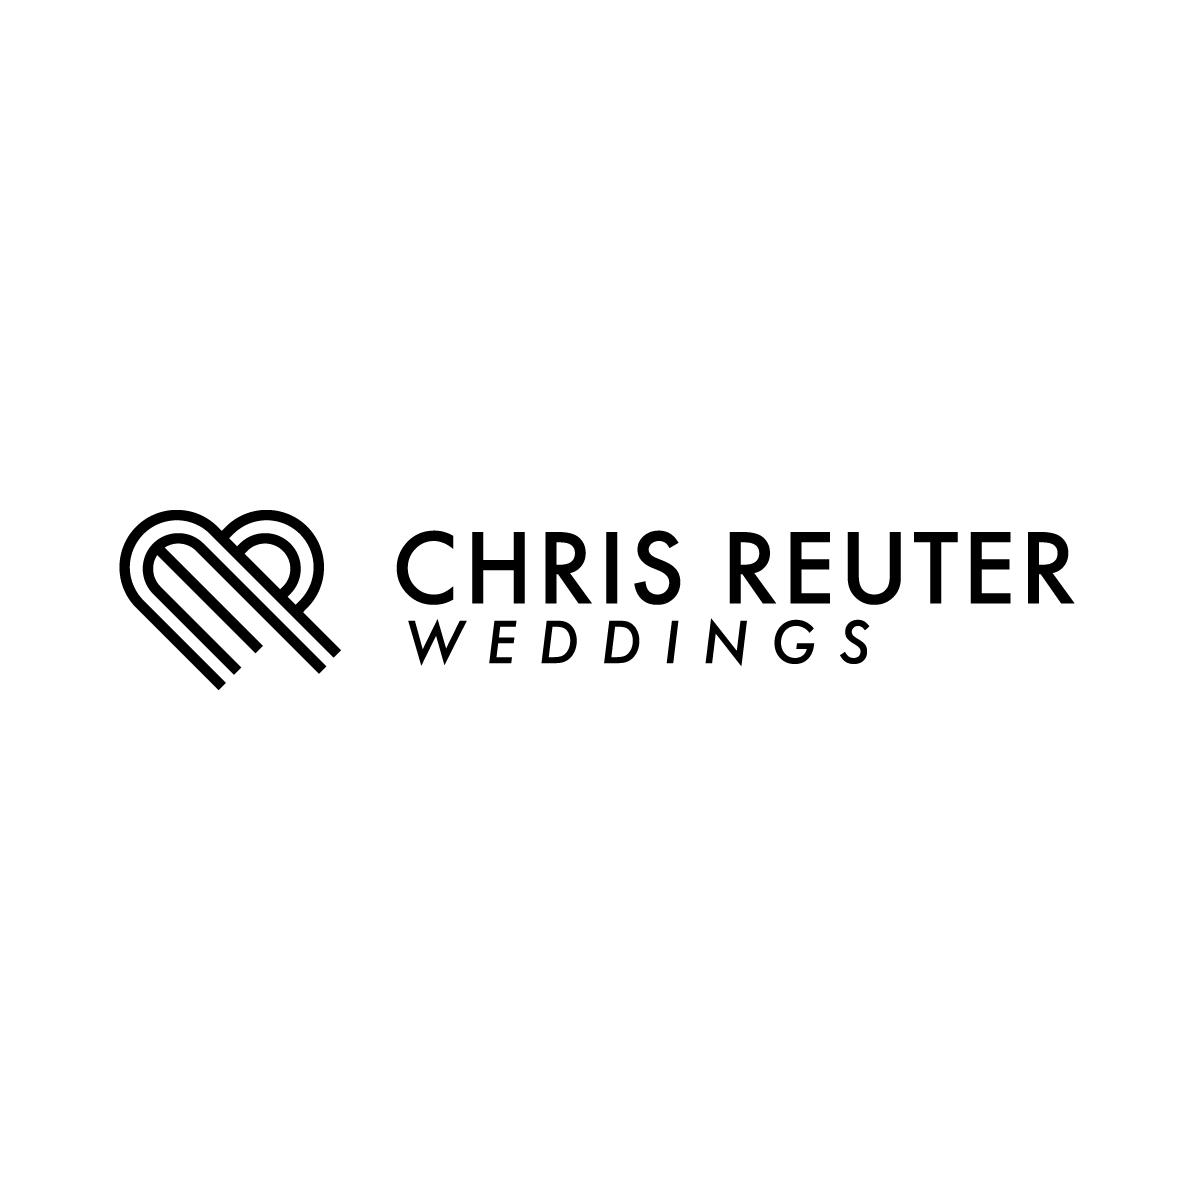 Chris-Reuter-Weddings